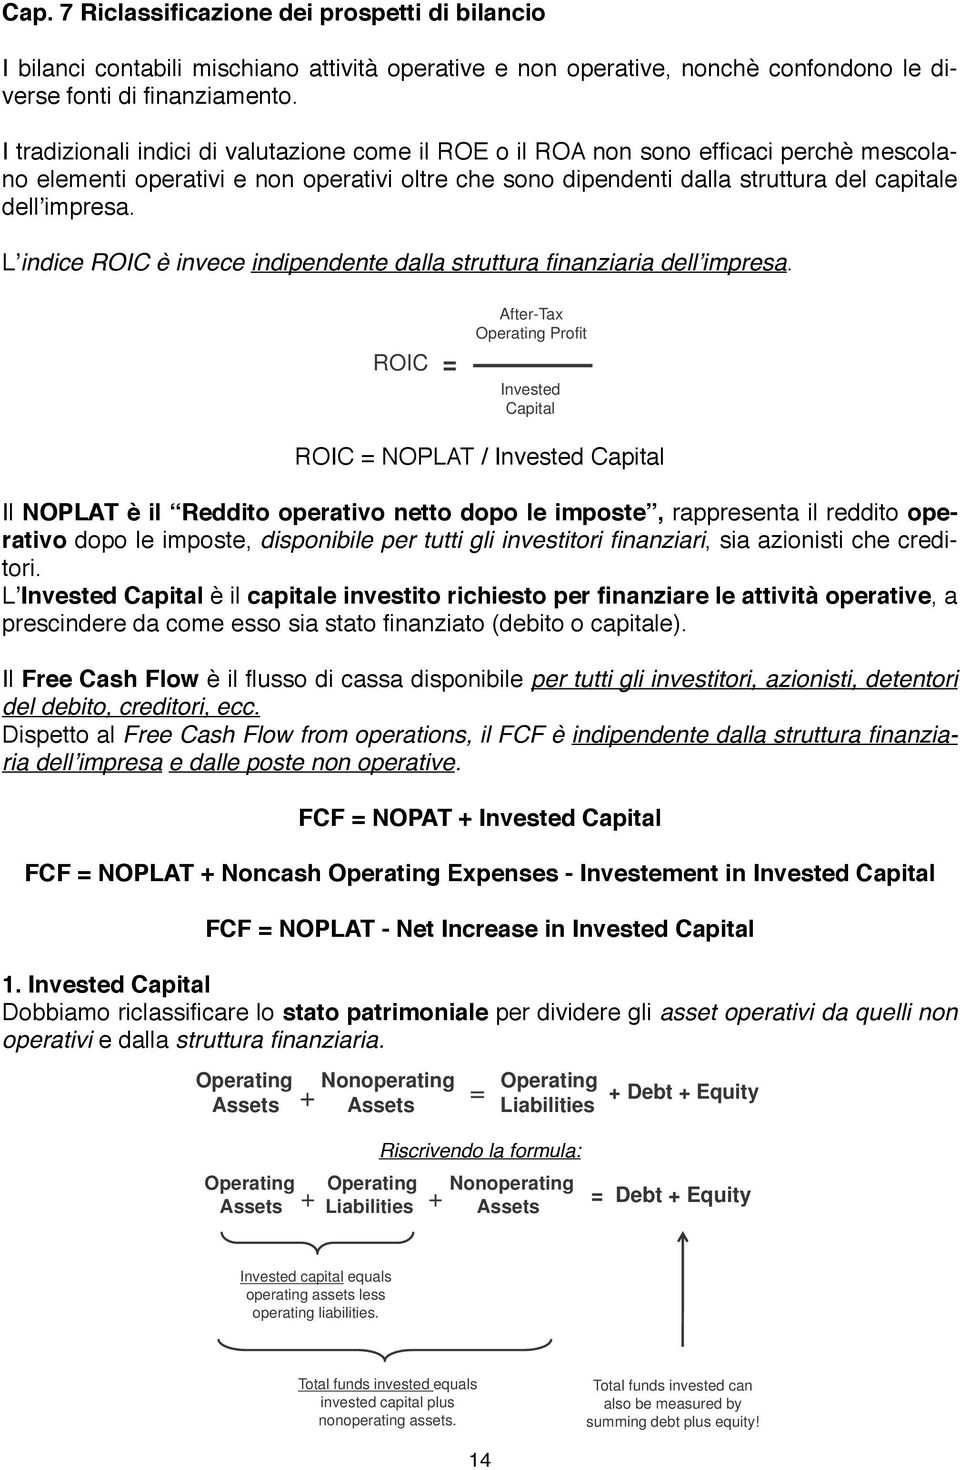 sono (ROIC) dipendenti is calculated by dividing dalla the struttura del capitale company s after-tax operating profits by the amount of net capital all dell'impresa.